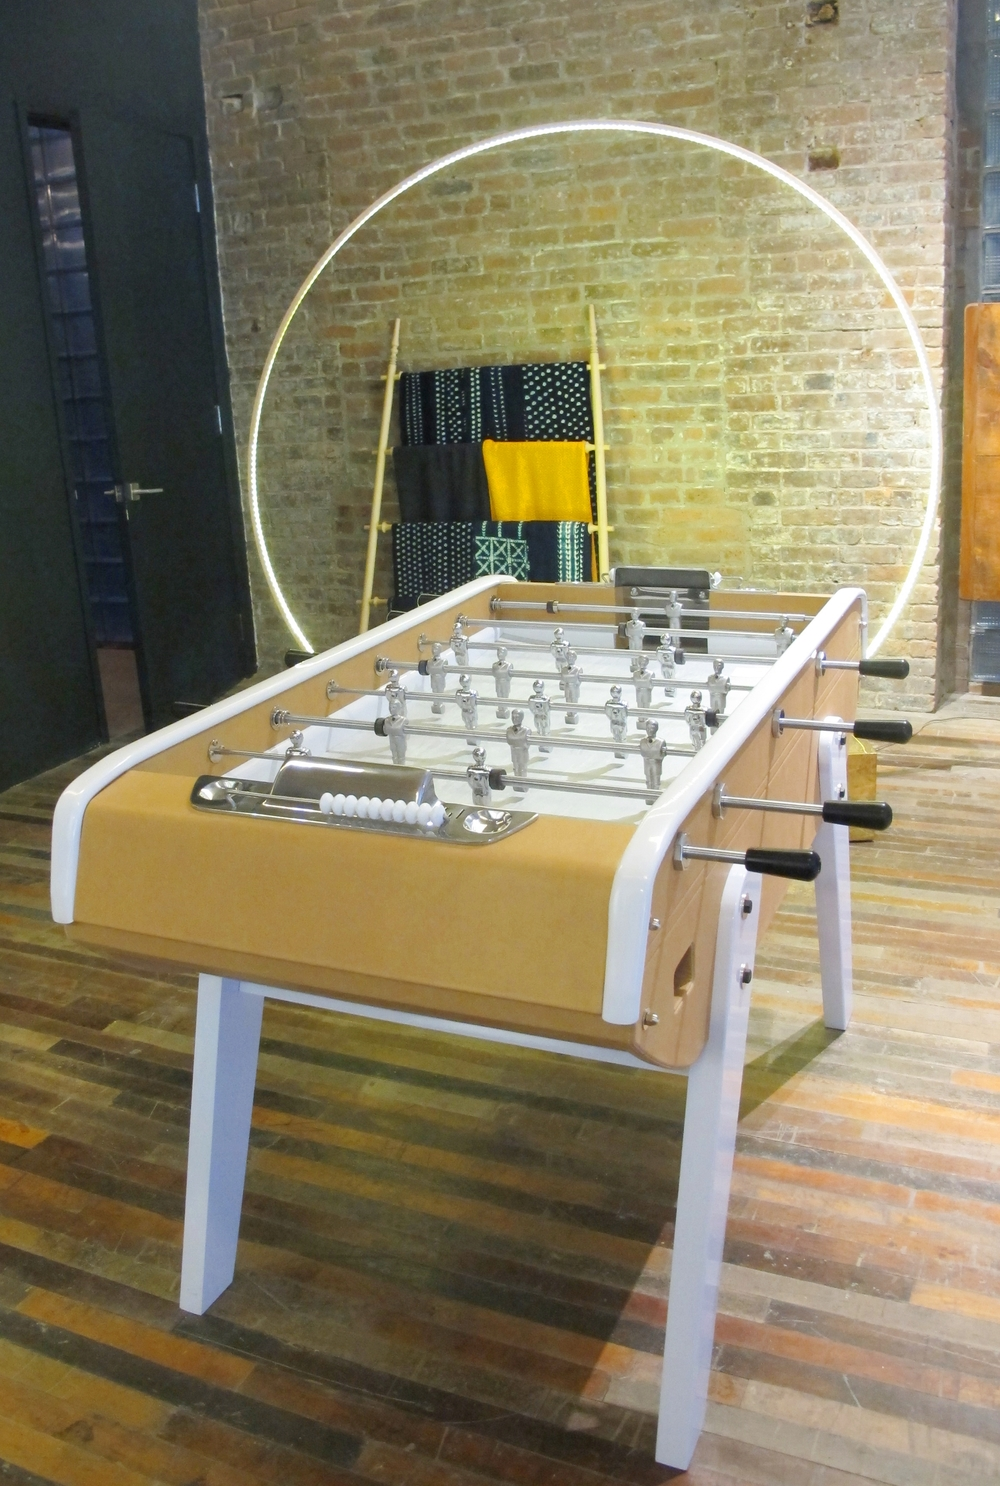 This foosball table designed by Bronzini for Domeau & Pérès is made of leather and aluminium and can be customized in a variety of colors.  So exquisite.